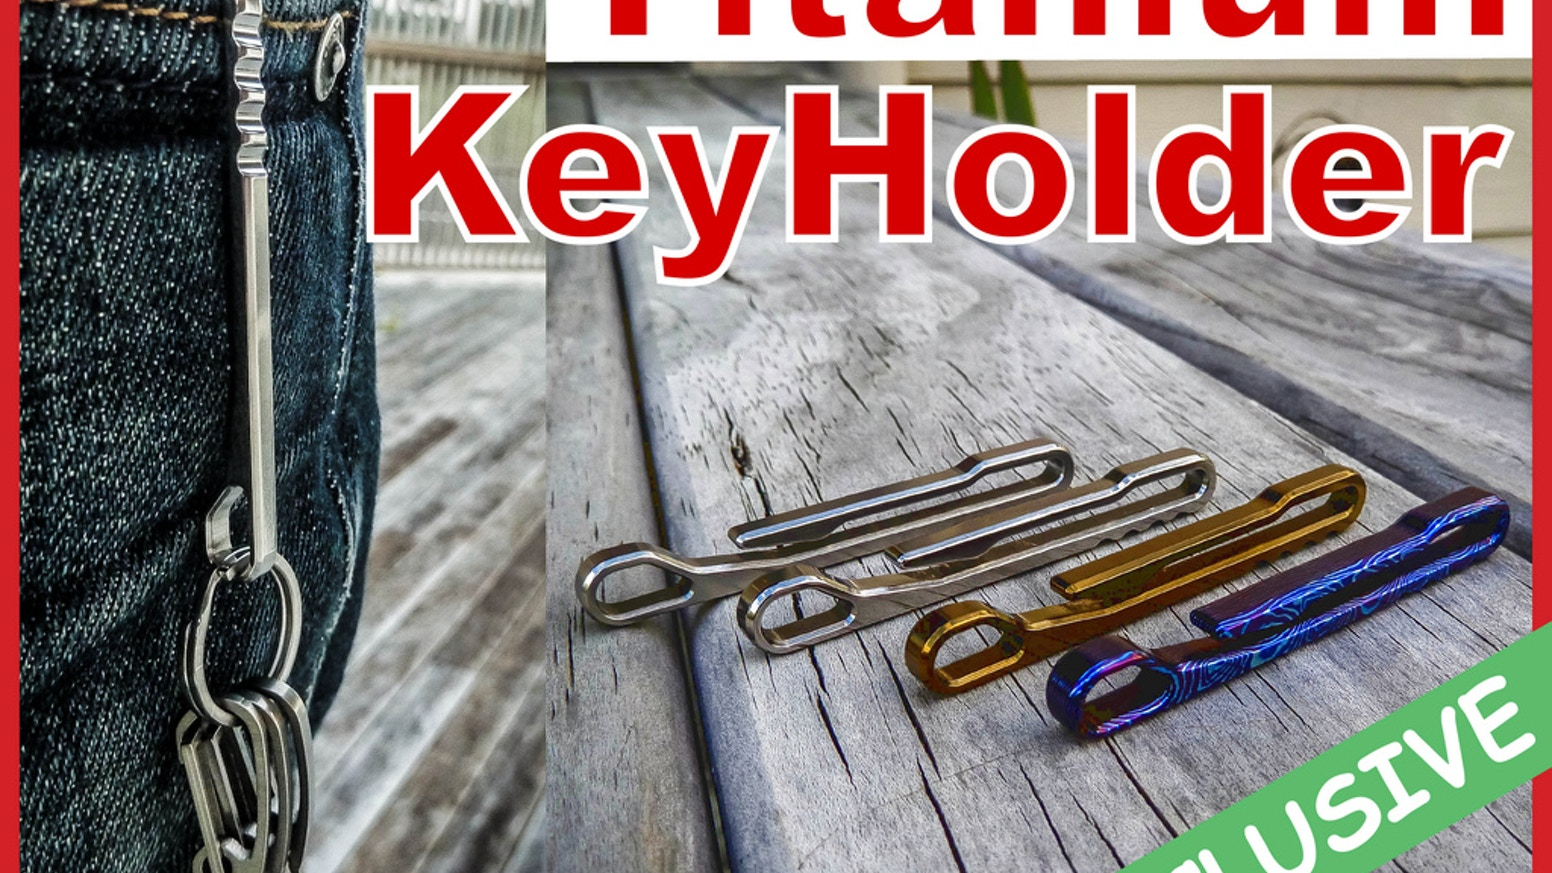 *NEW*... Possibly The World's Greatest Titanium Keyholder For Everyday Carry EDC...  Your Friends Will Envy You... GUARANTEED!